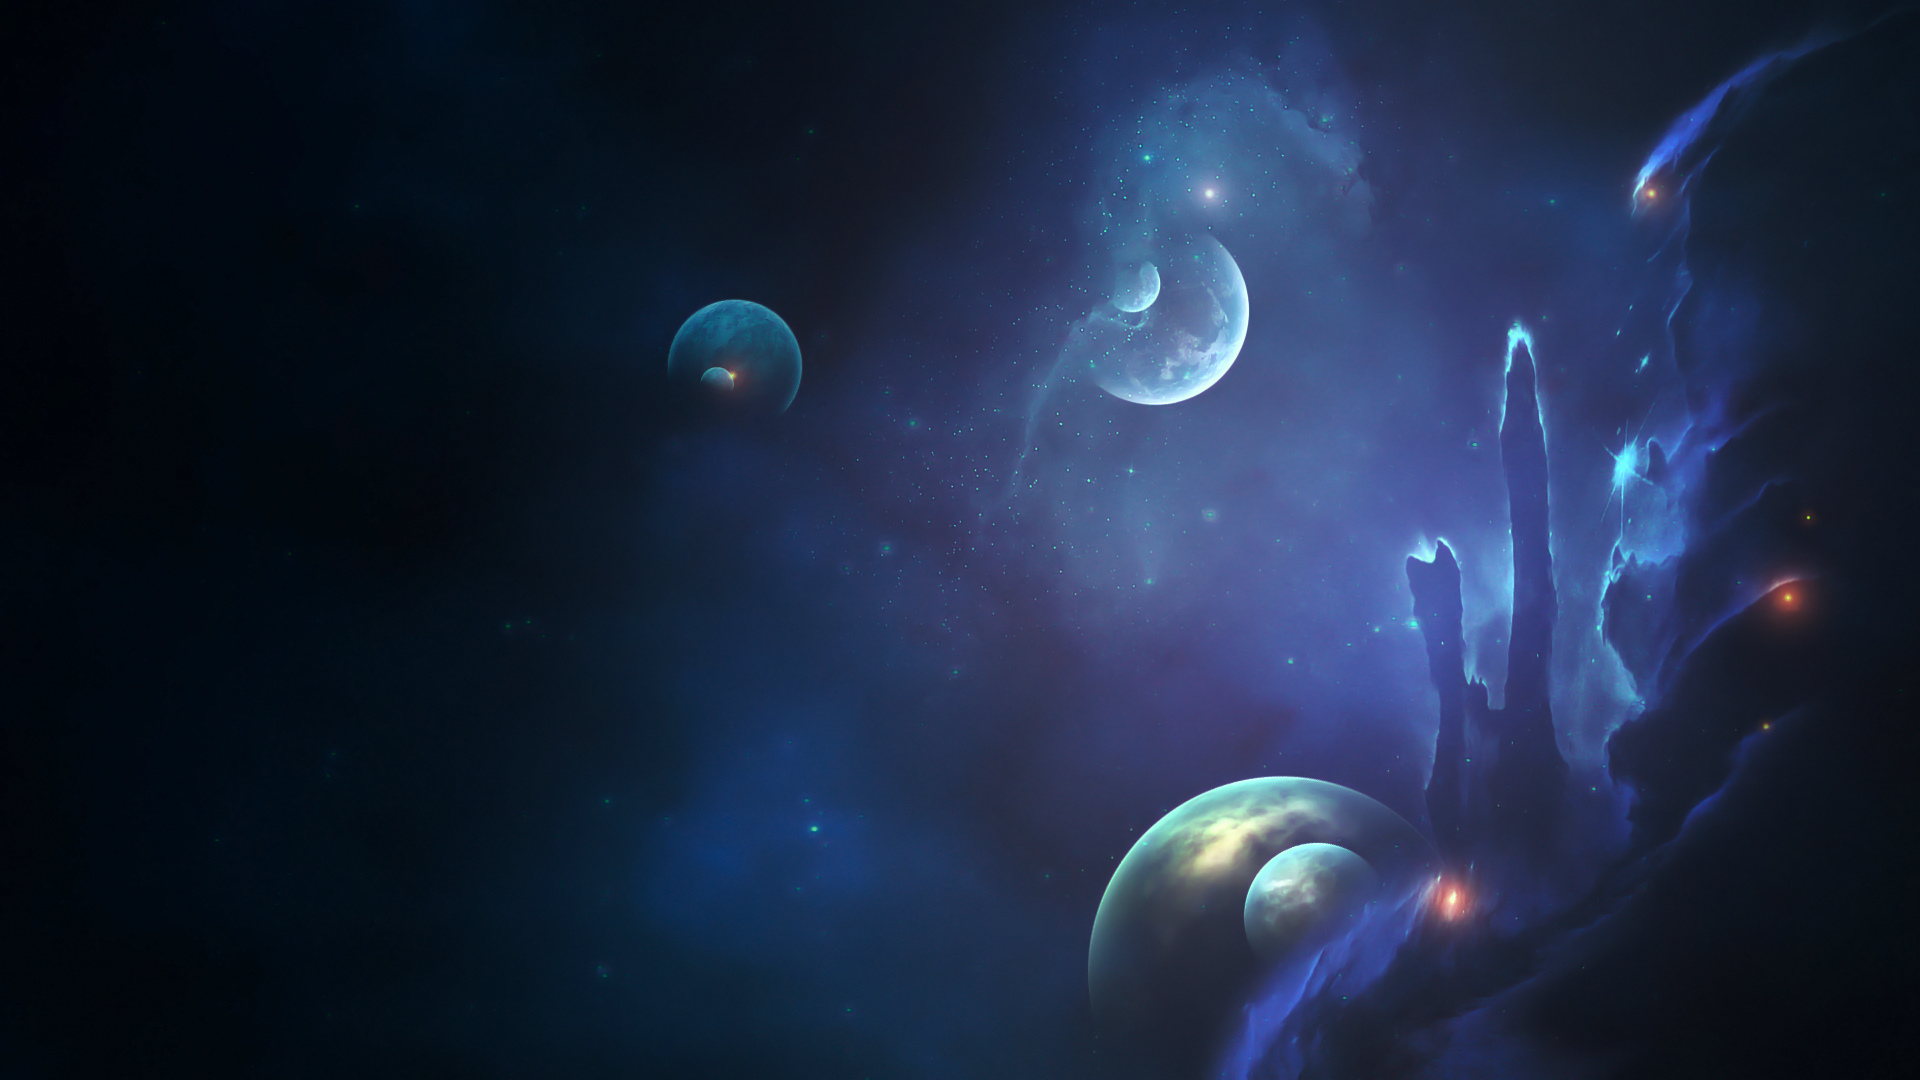 Space stars planets nebula wallpaper | 1920x1080 | 112933 ...